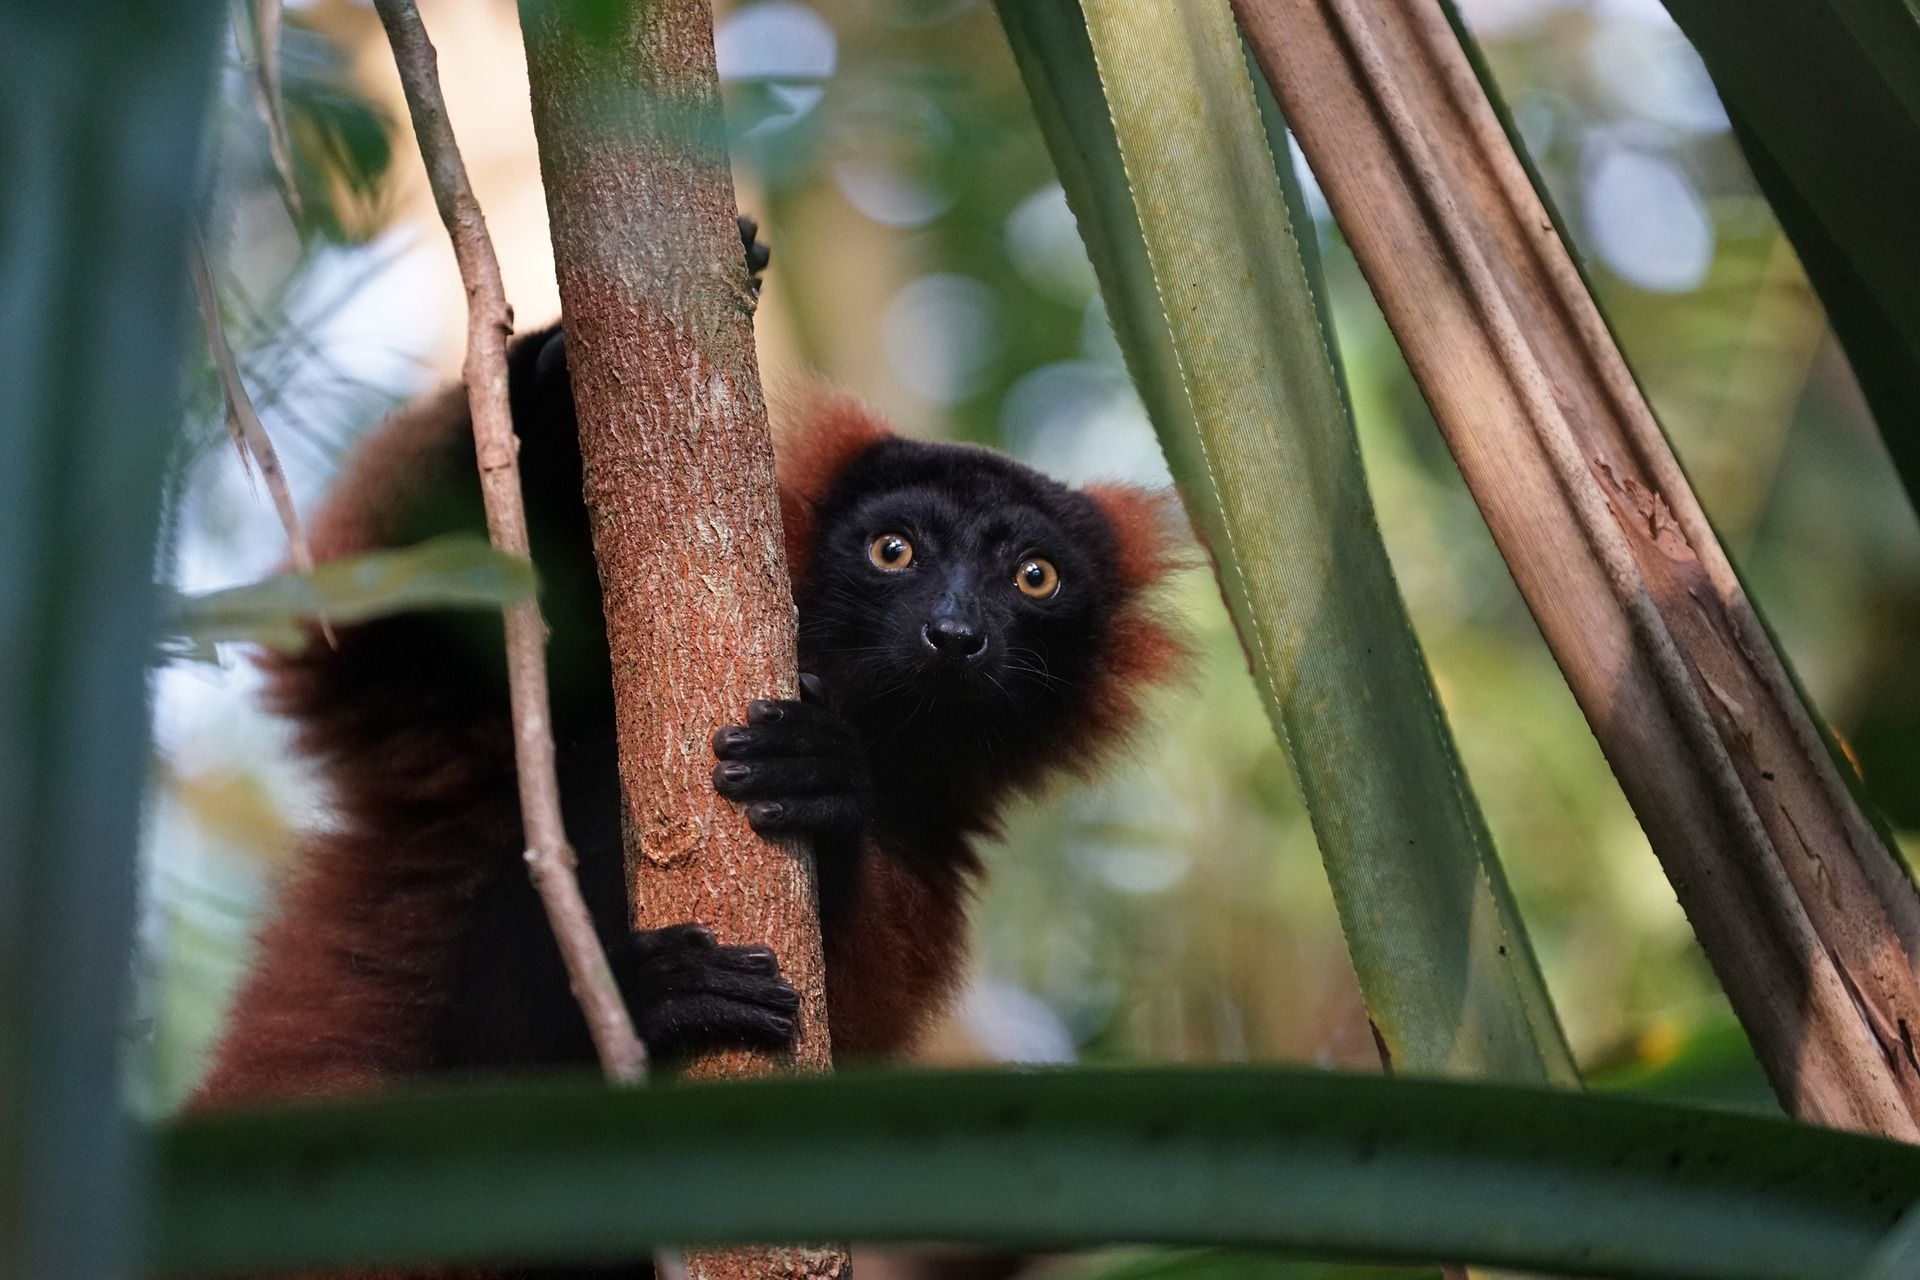 A lemur in the wild. Surveys show that 95 percent of lemur species are in danger of extinction. Get involved at LFT.